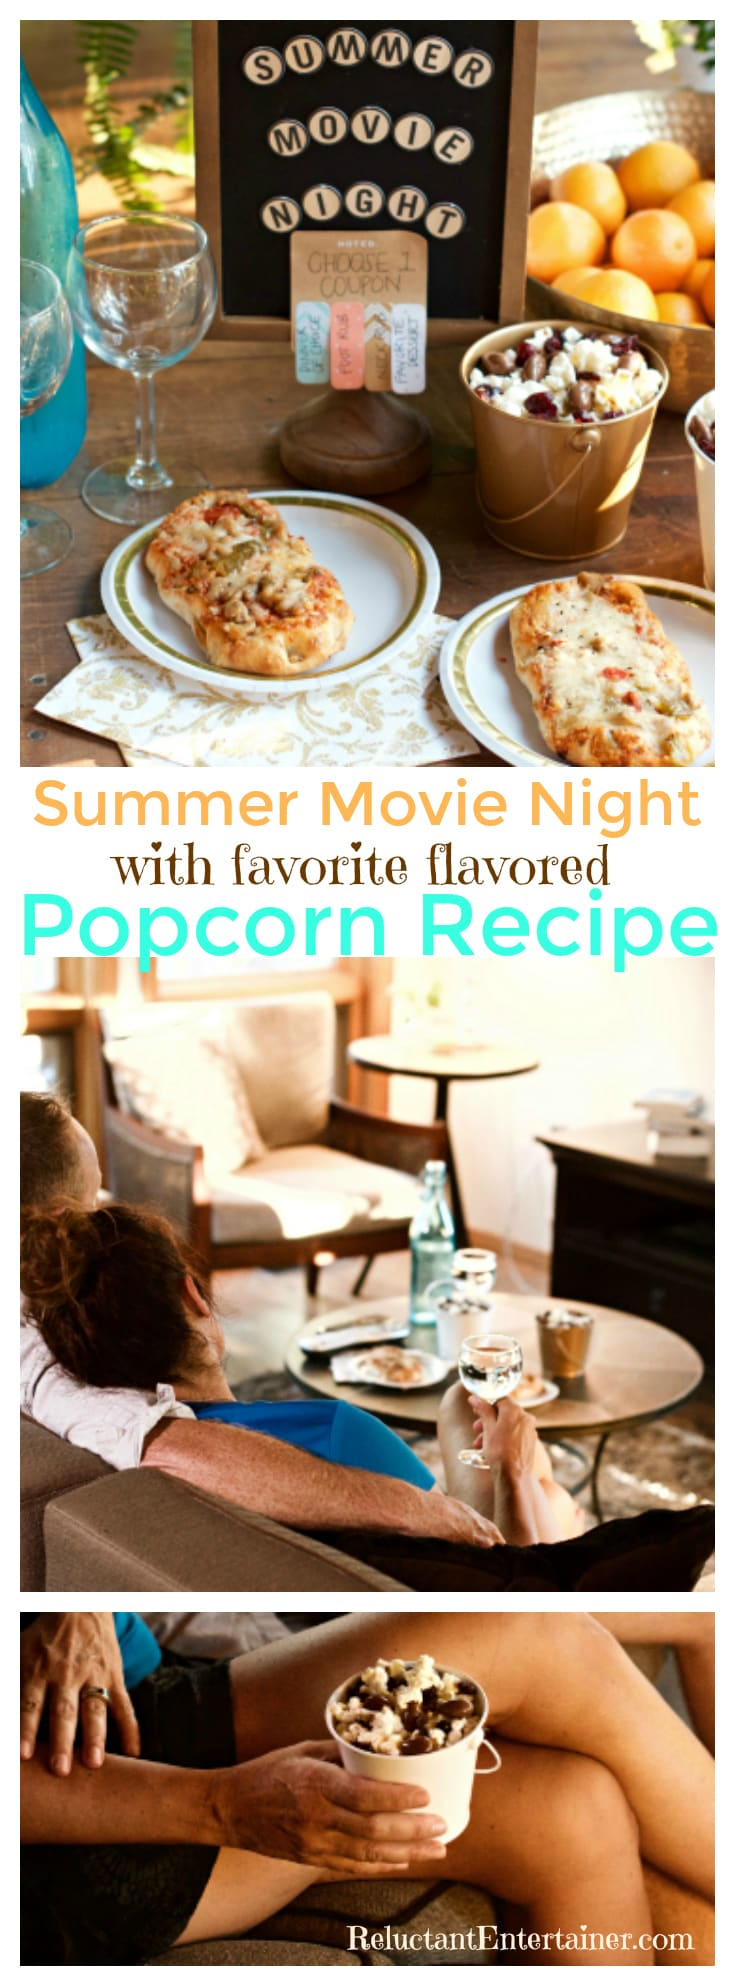 Create a lasting memory of fun and relaxation for a Summer Movie Night, and your favorite flavored popcorn | ReluctantEntertainer.com